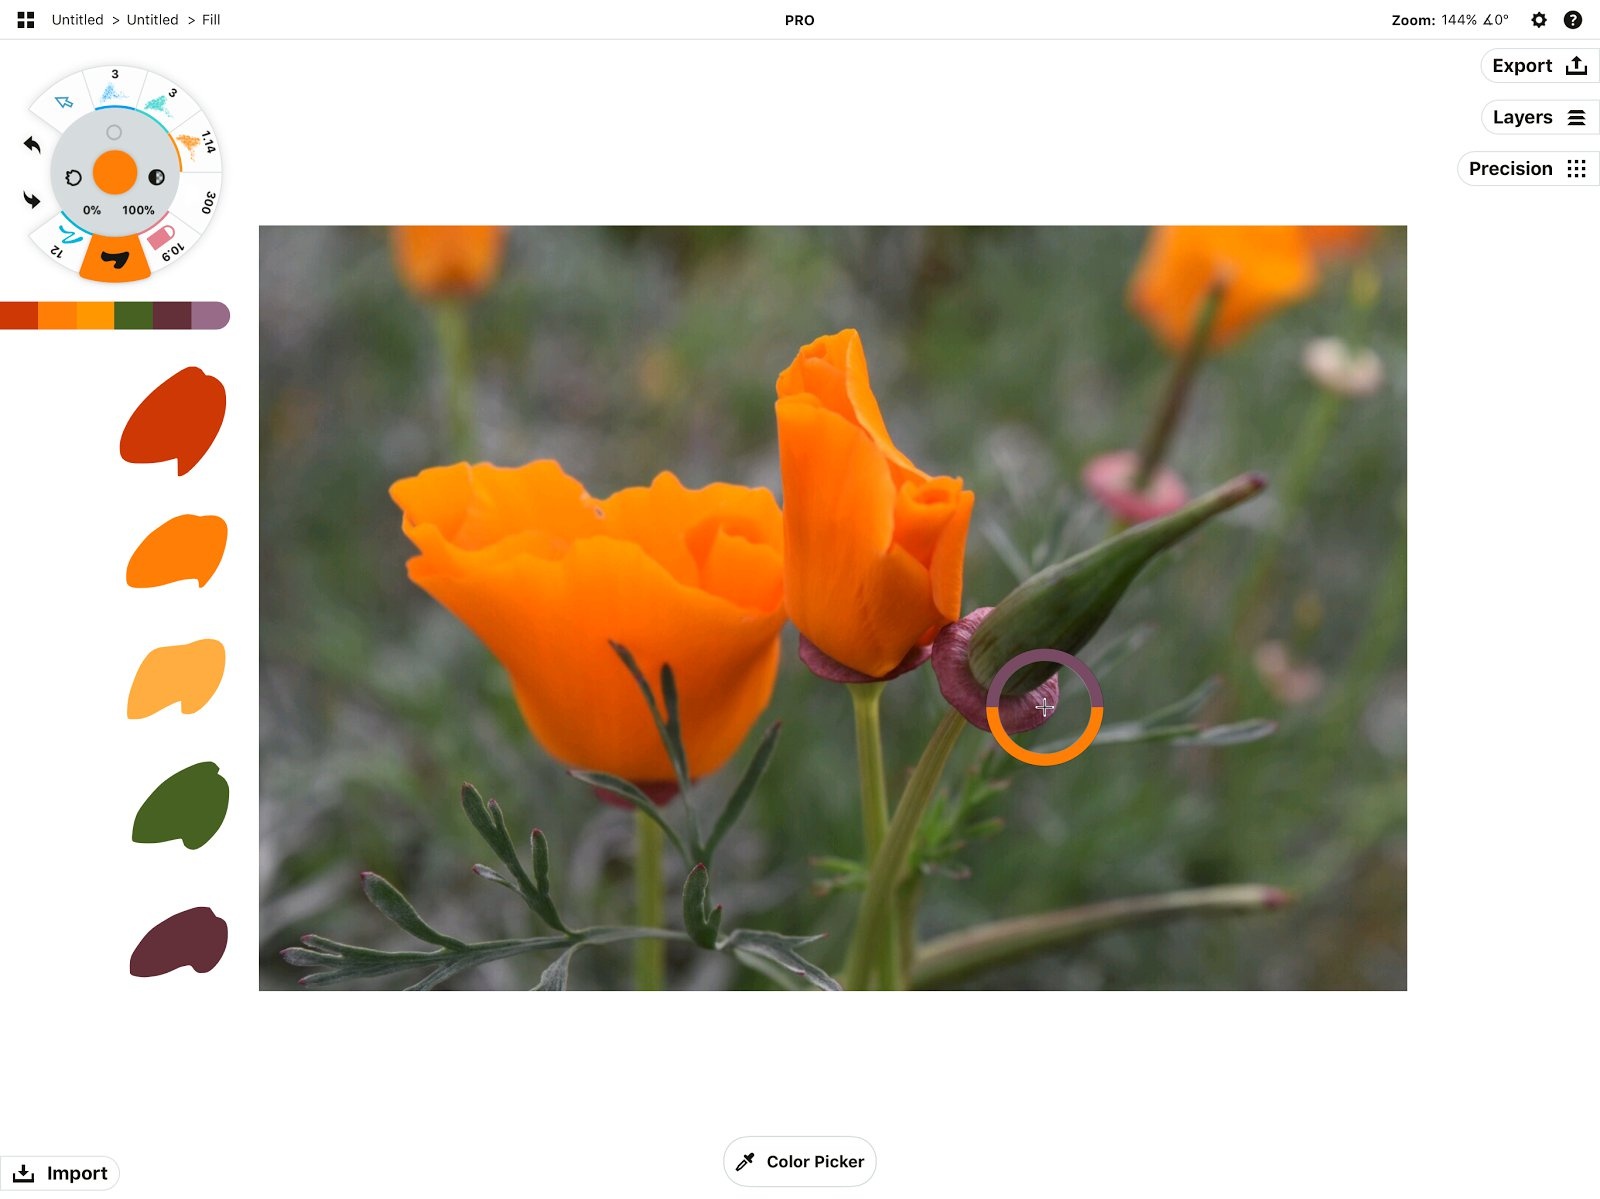 colorpicker_photo.png